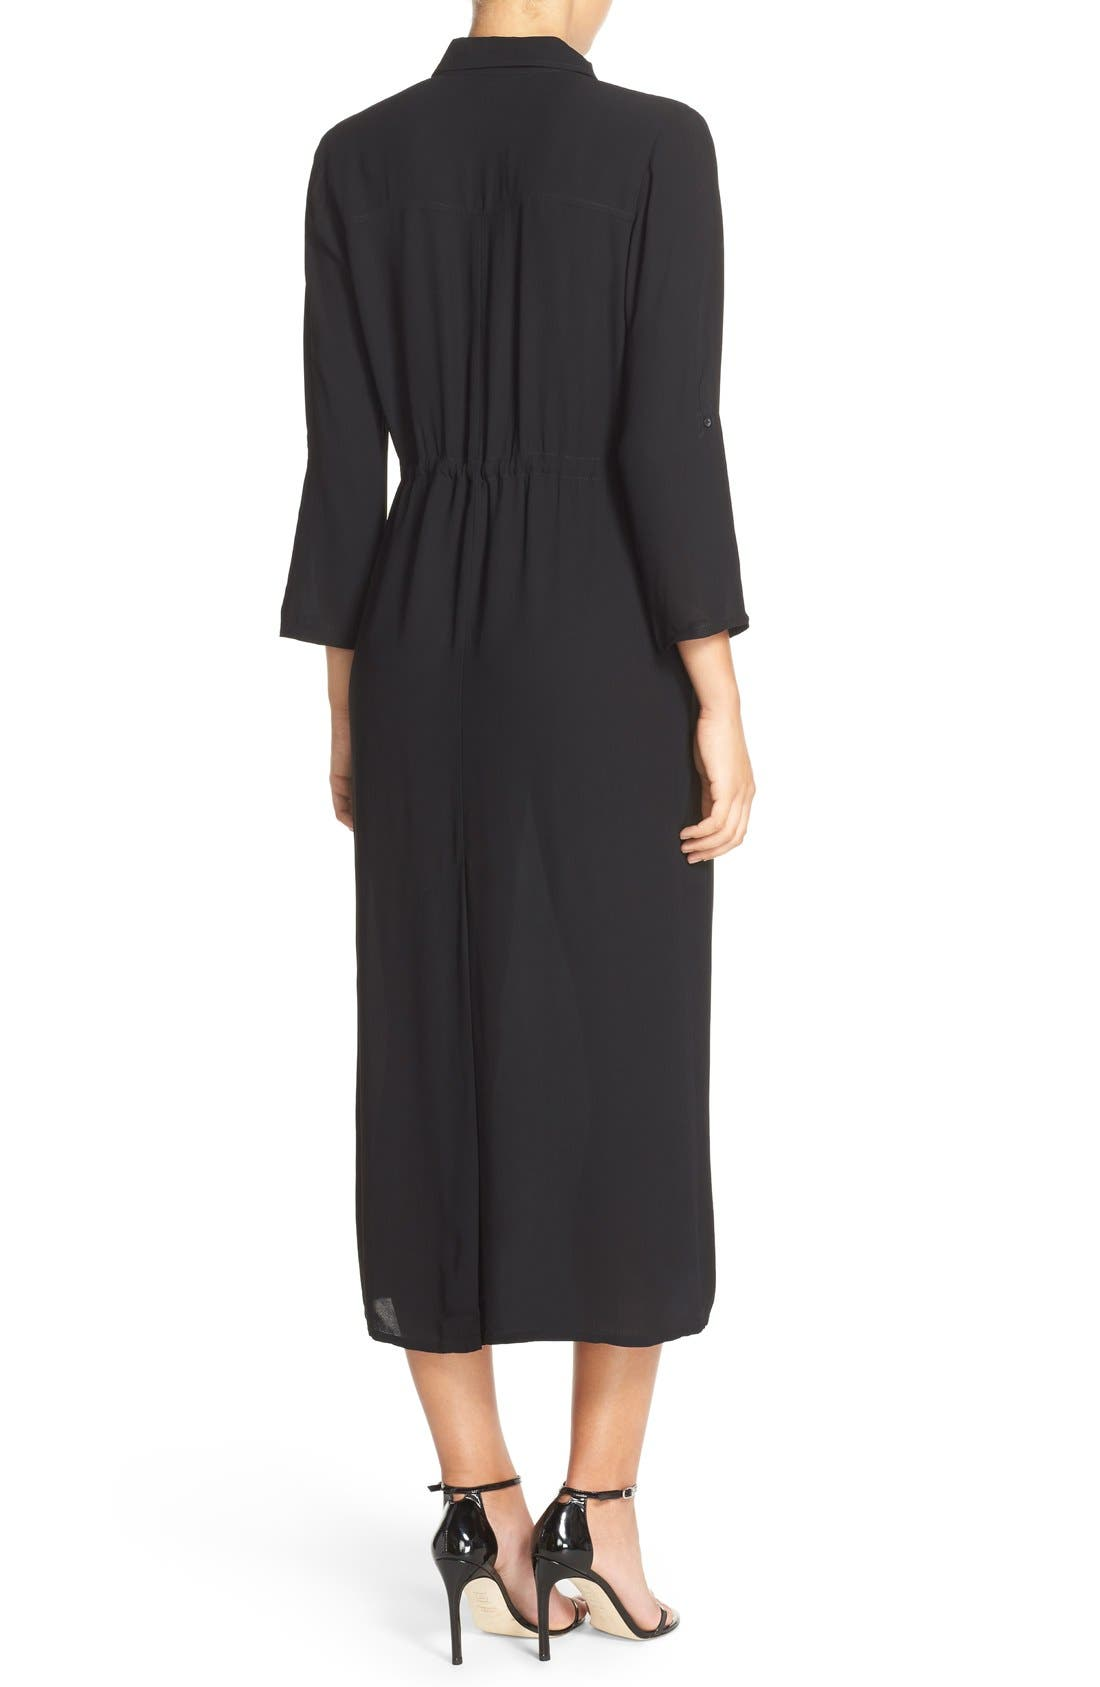 FRENCH CONNECTION, 'Cecil' Midi Shirtdress, Alternate thumbnail 2, color, 005